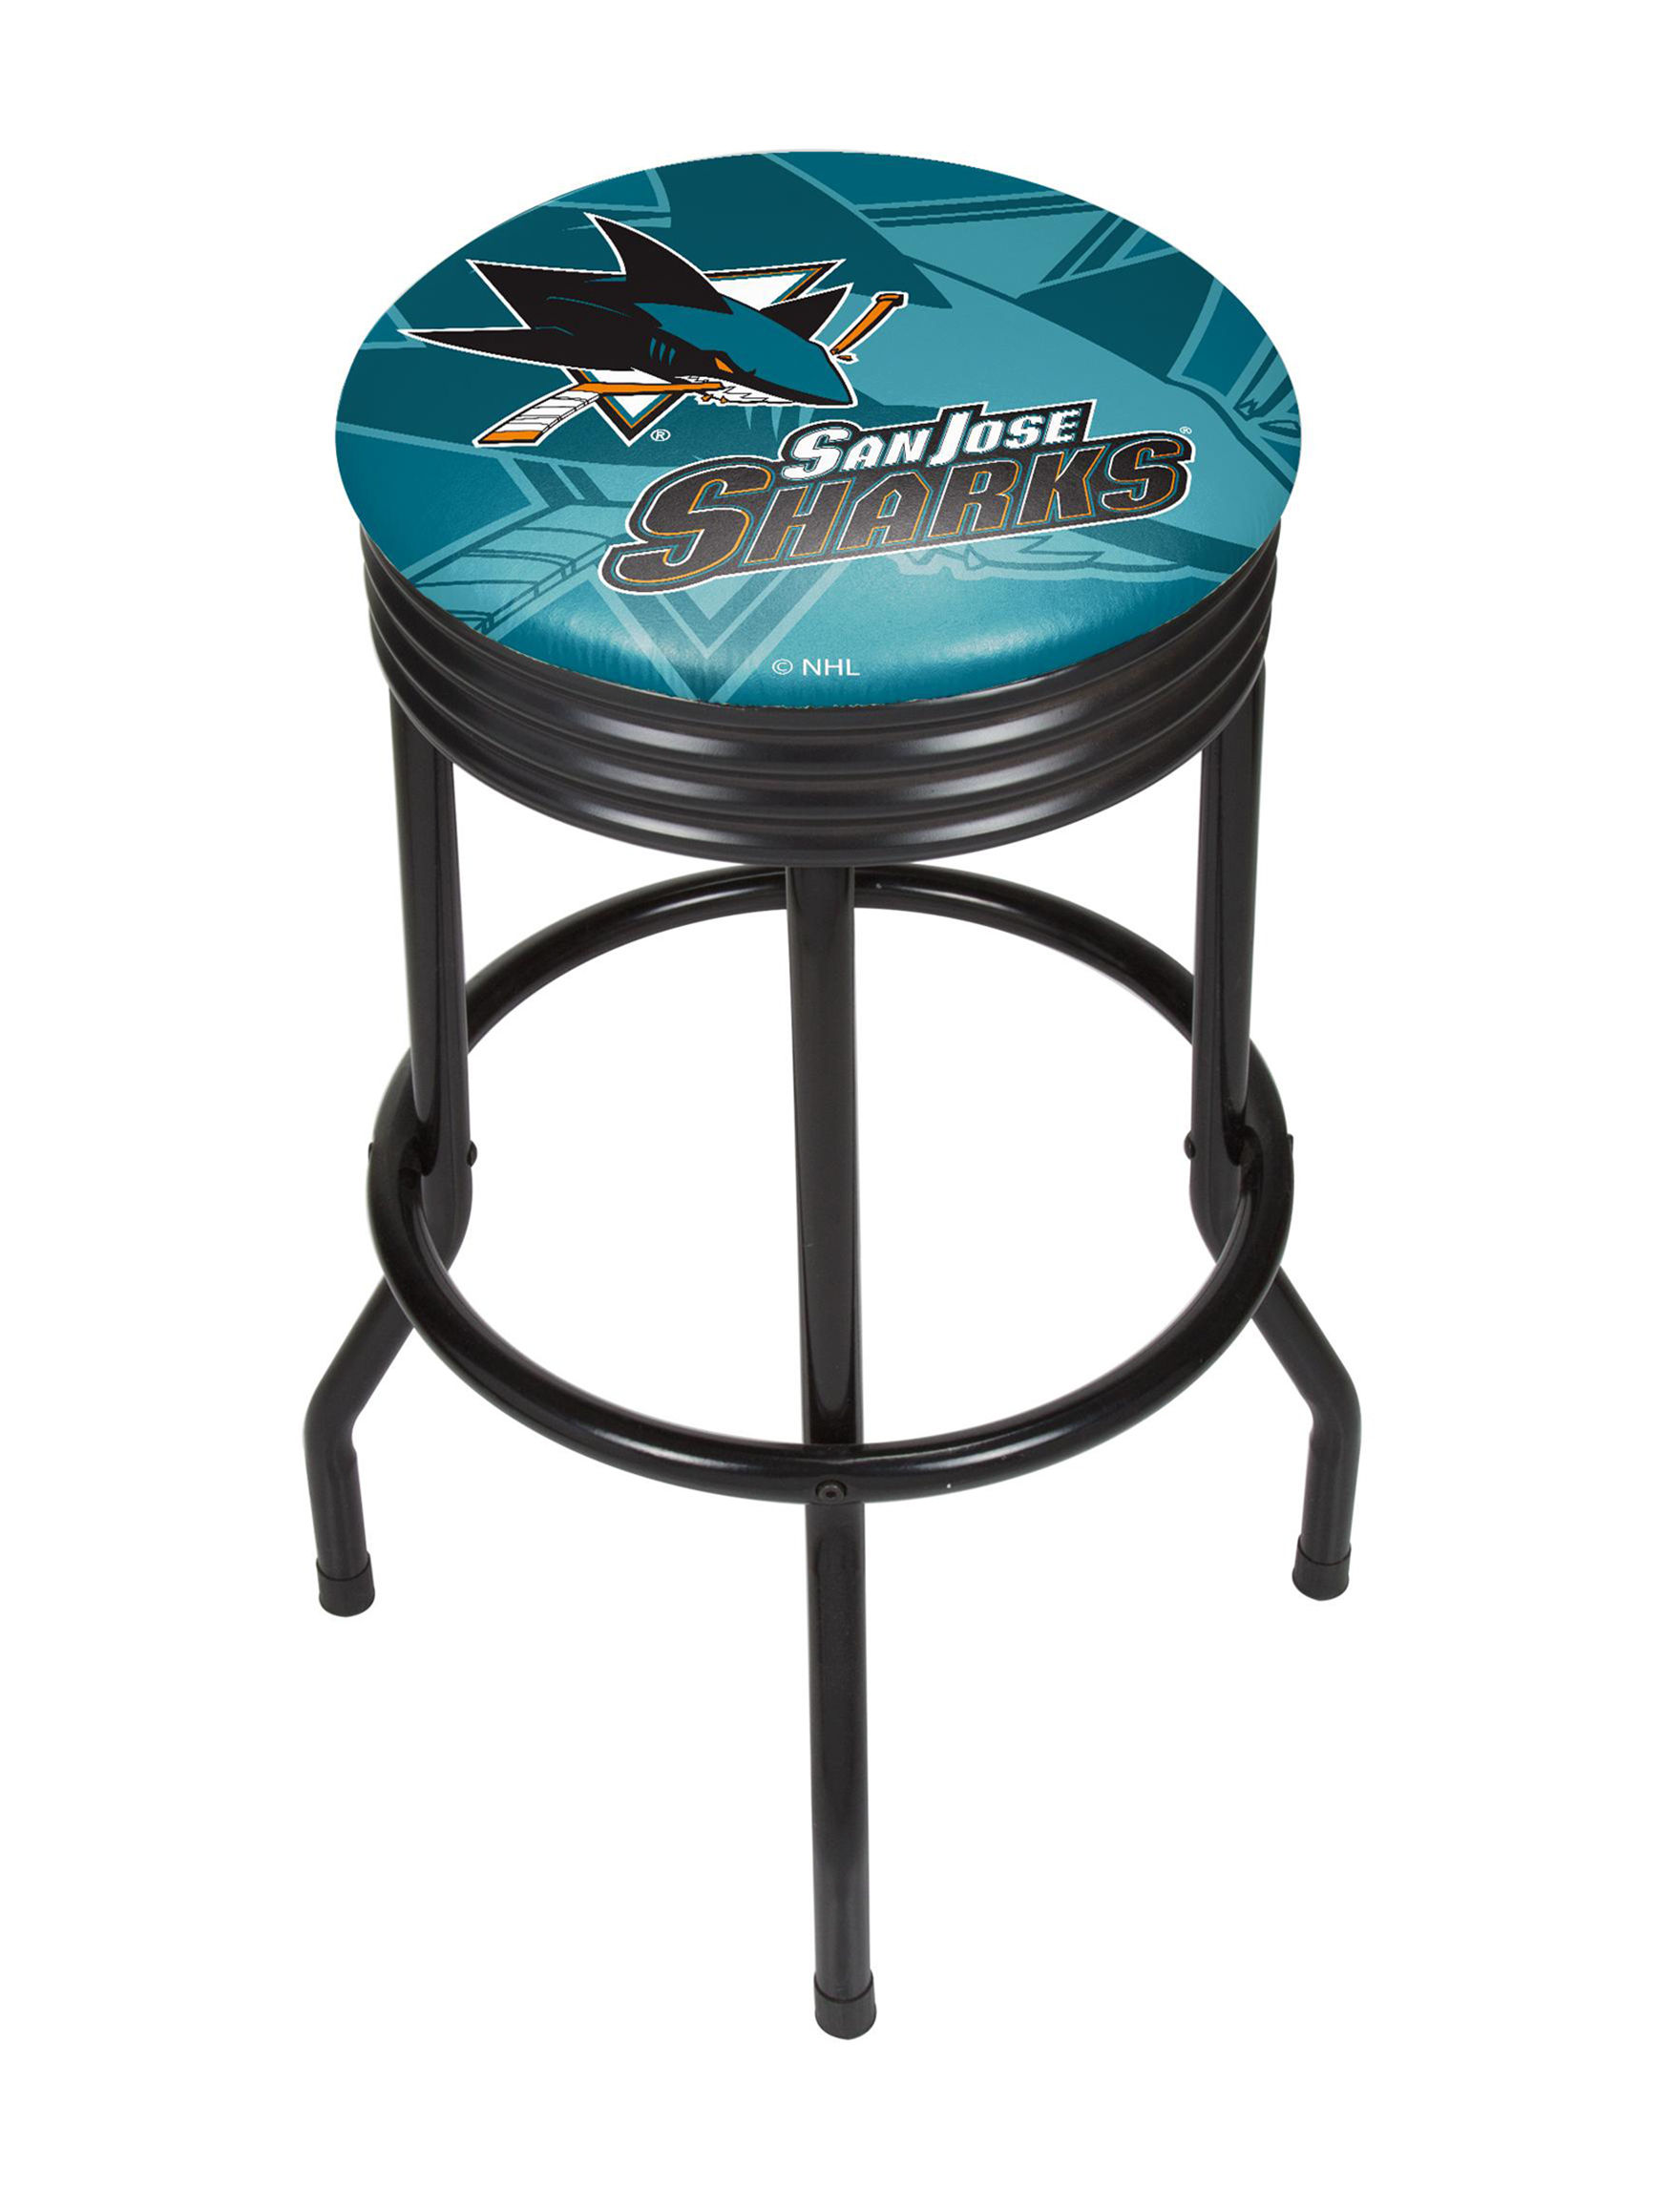 NHL Teal / Black Bar & Kitchen Stools Kitchen & Dining Furniture